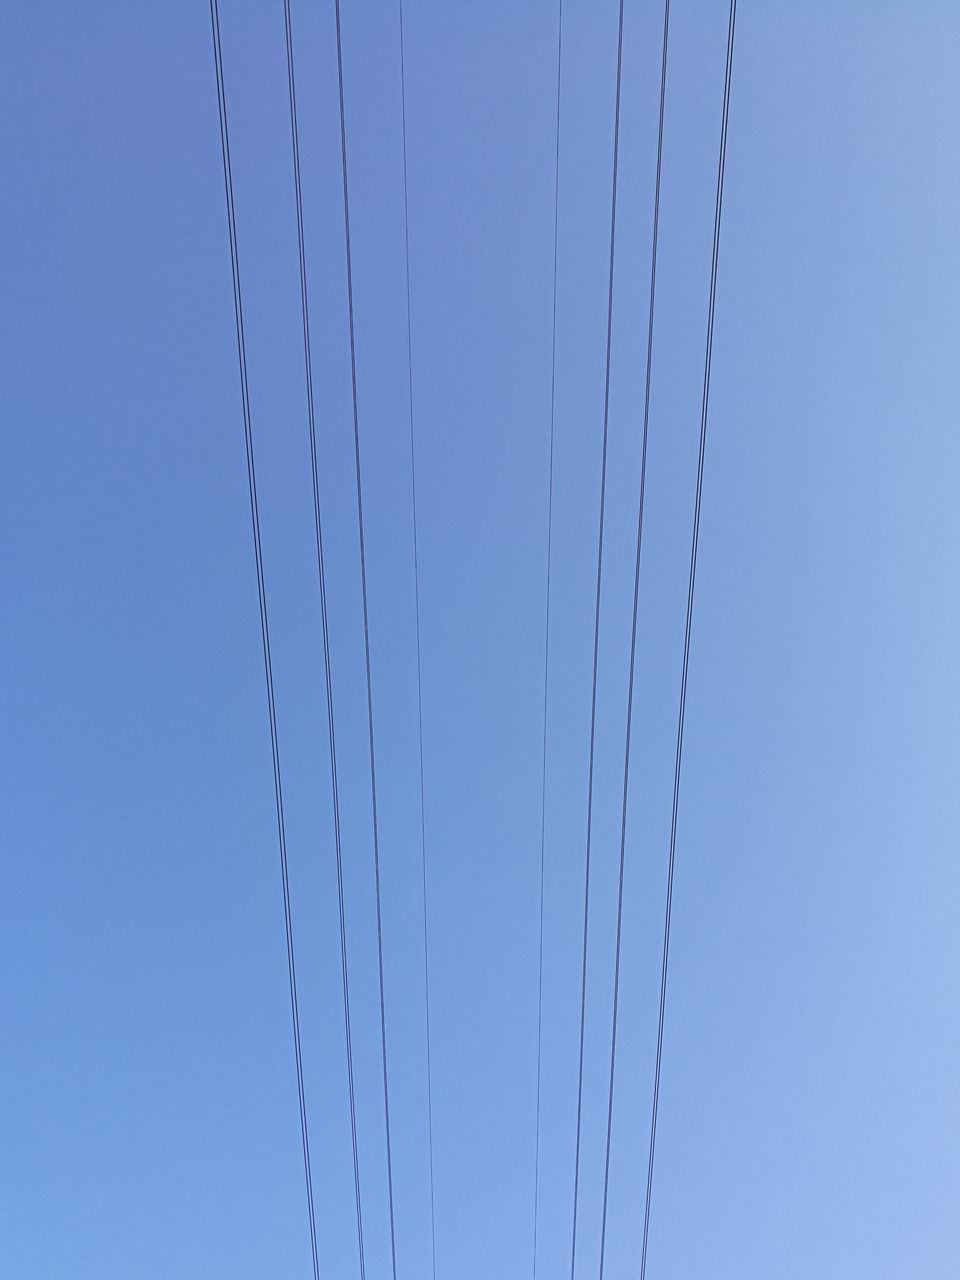 cable, low angle view, clear sky, no people, power line, connection, outdoors, day, blue, nature, sky